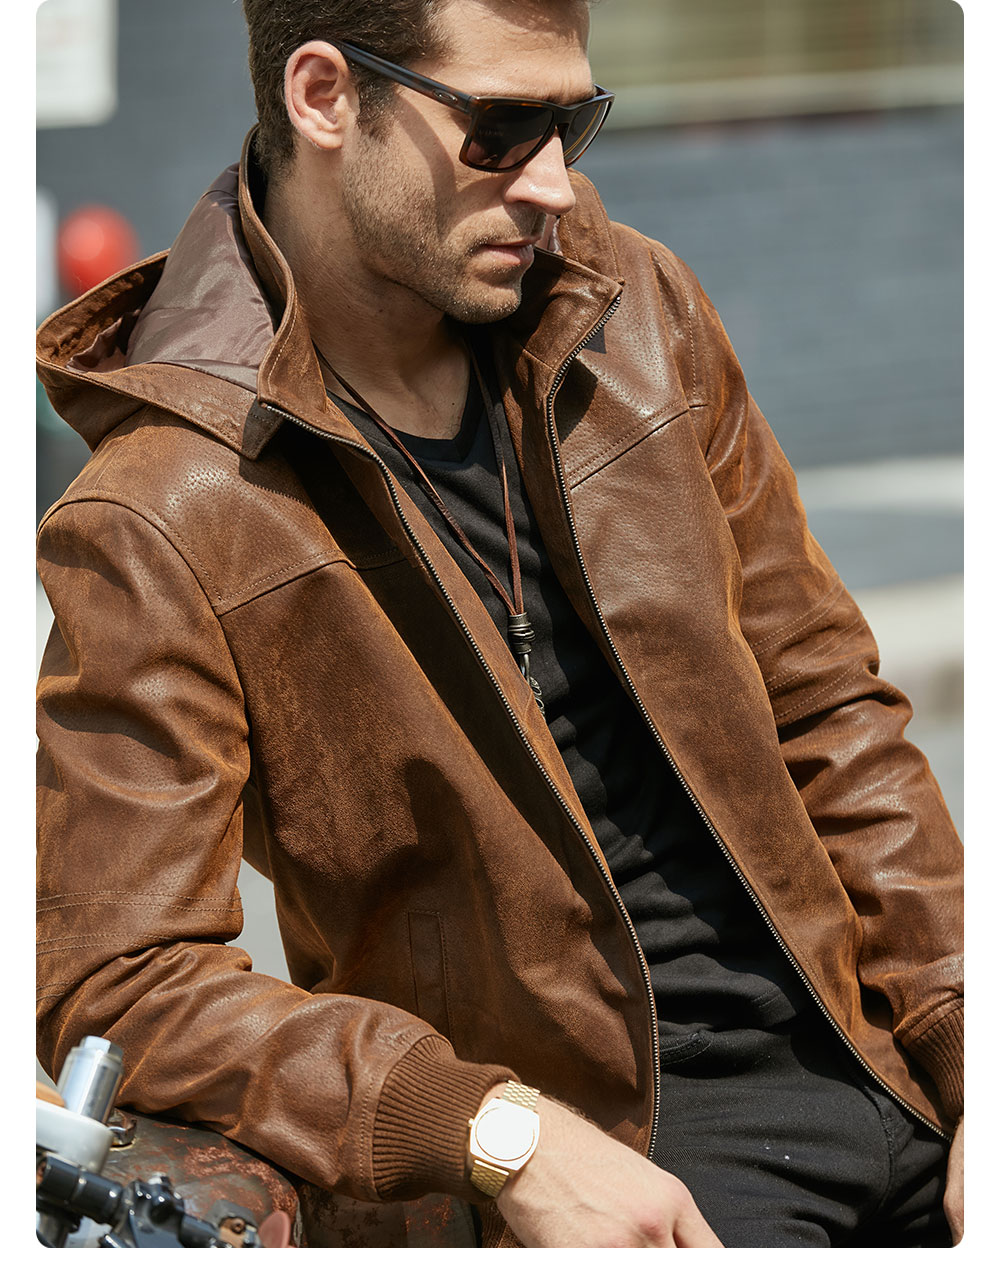 Hb15232d6c799453e8793c340c50e2c54f New Men's Winter Jacket Made Of Genuine Pigskin Leather With A Hood, Pigskin Motorcycle Jacket, Natural Leather Jacket